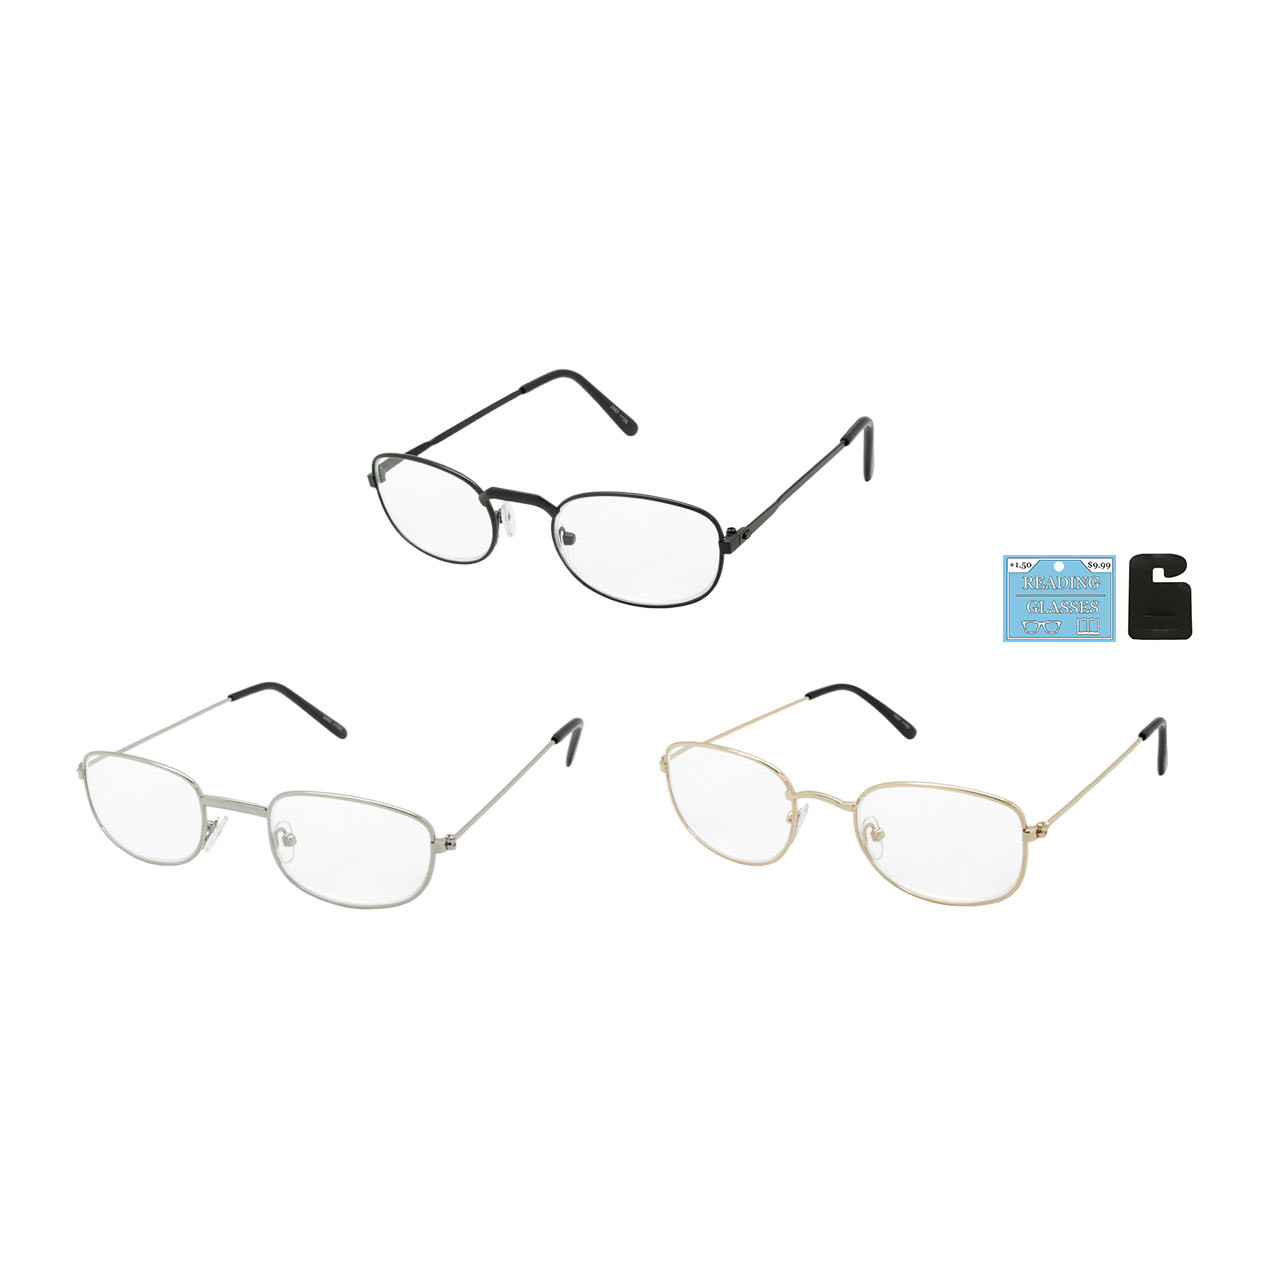 2aef943c42be Assorted Metal Reading Glasses in Single Diopters or Powers